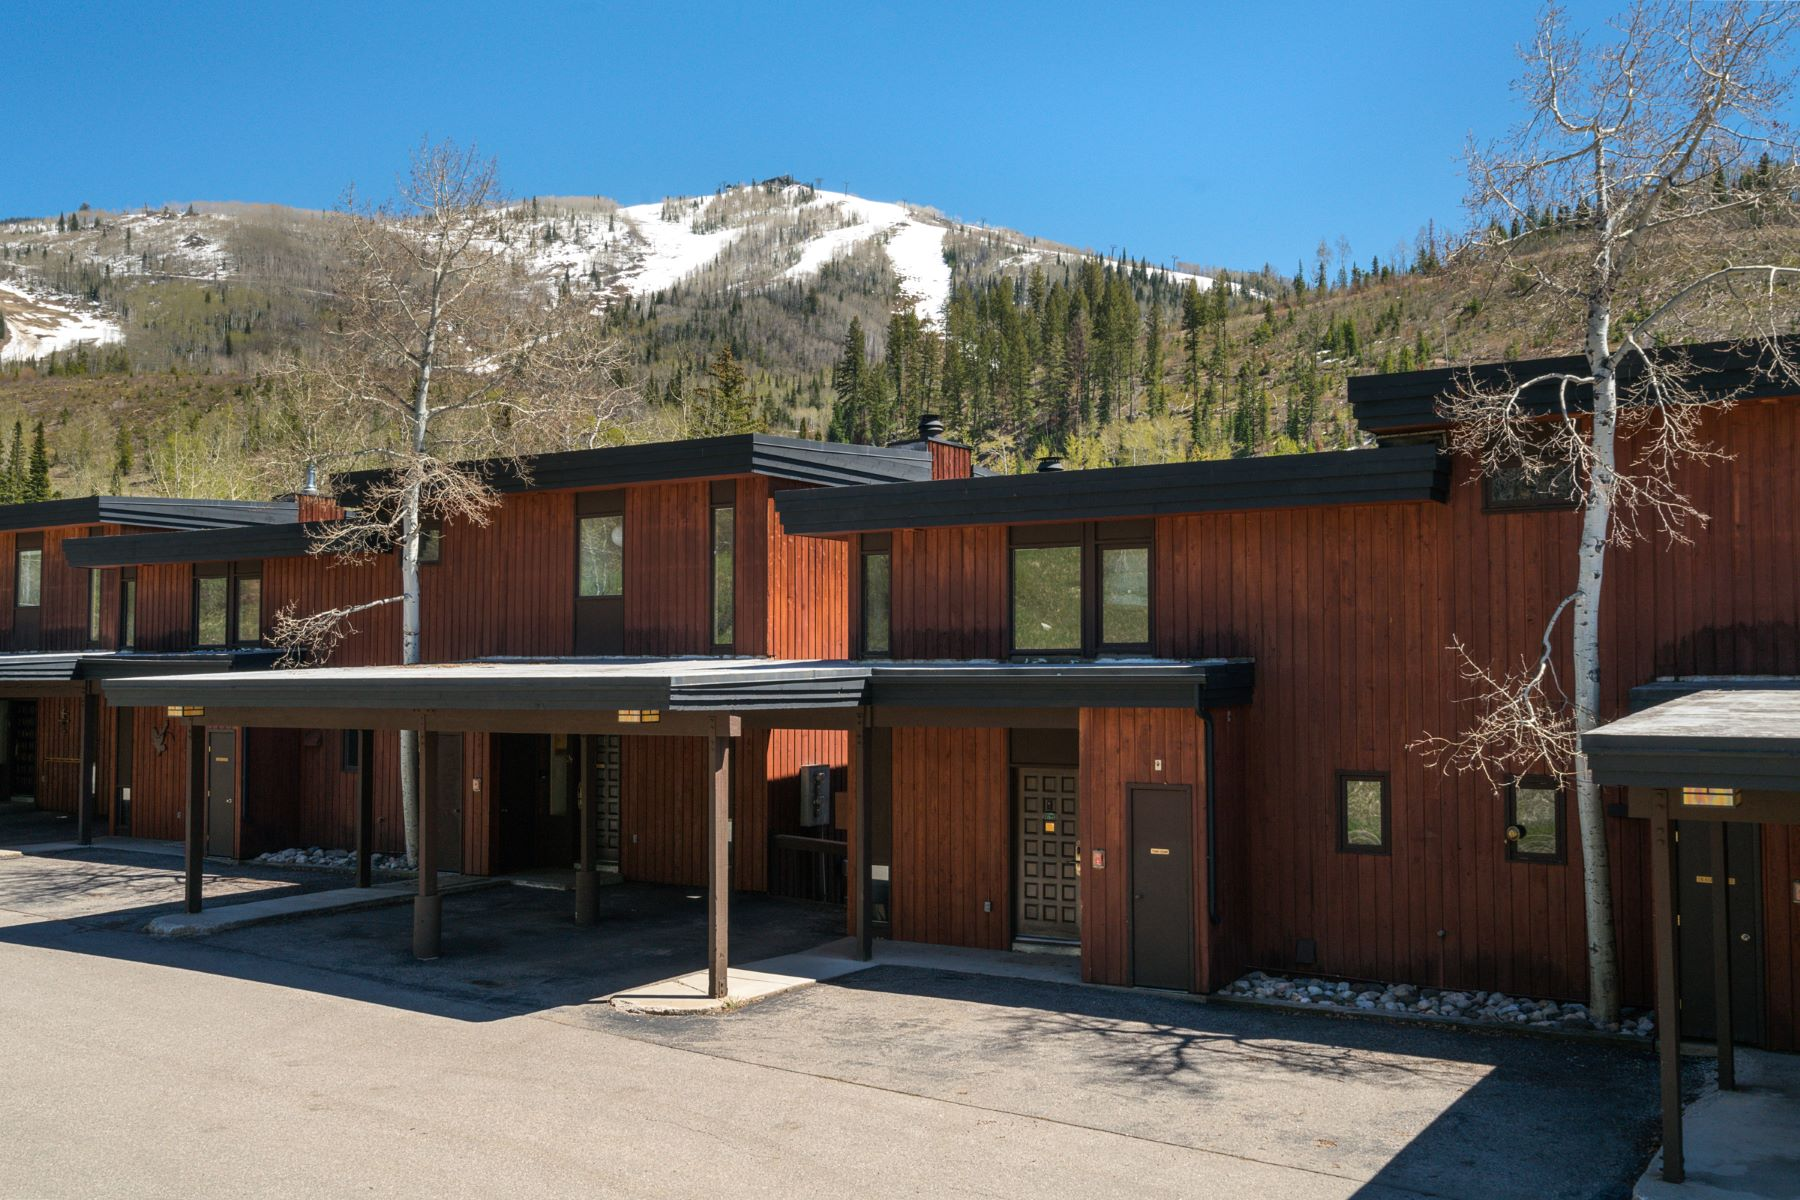 Superb Ski-In/Ski-Out Location 2430 Storm Meadows Dr #28 Steamboat Springs, Colorado 80487 United States